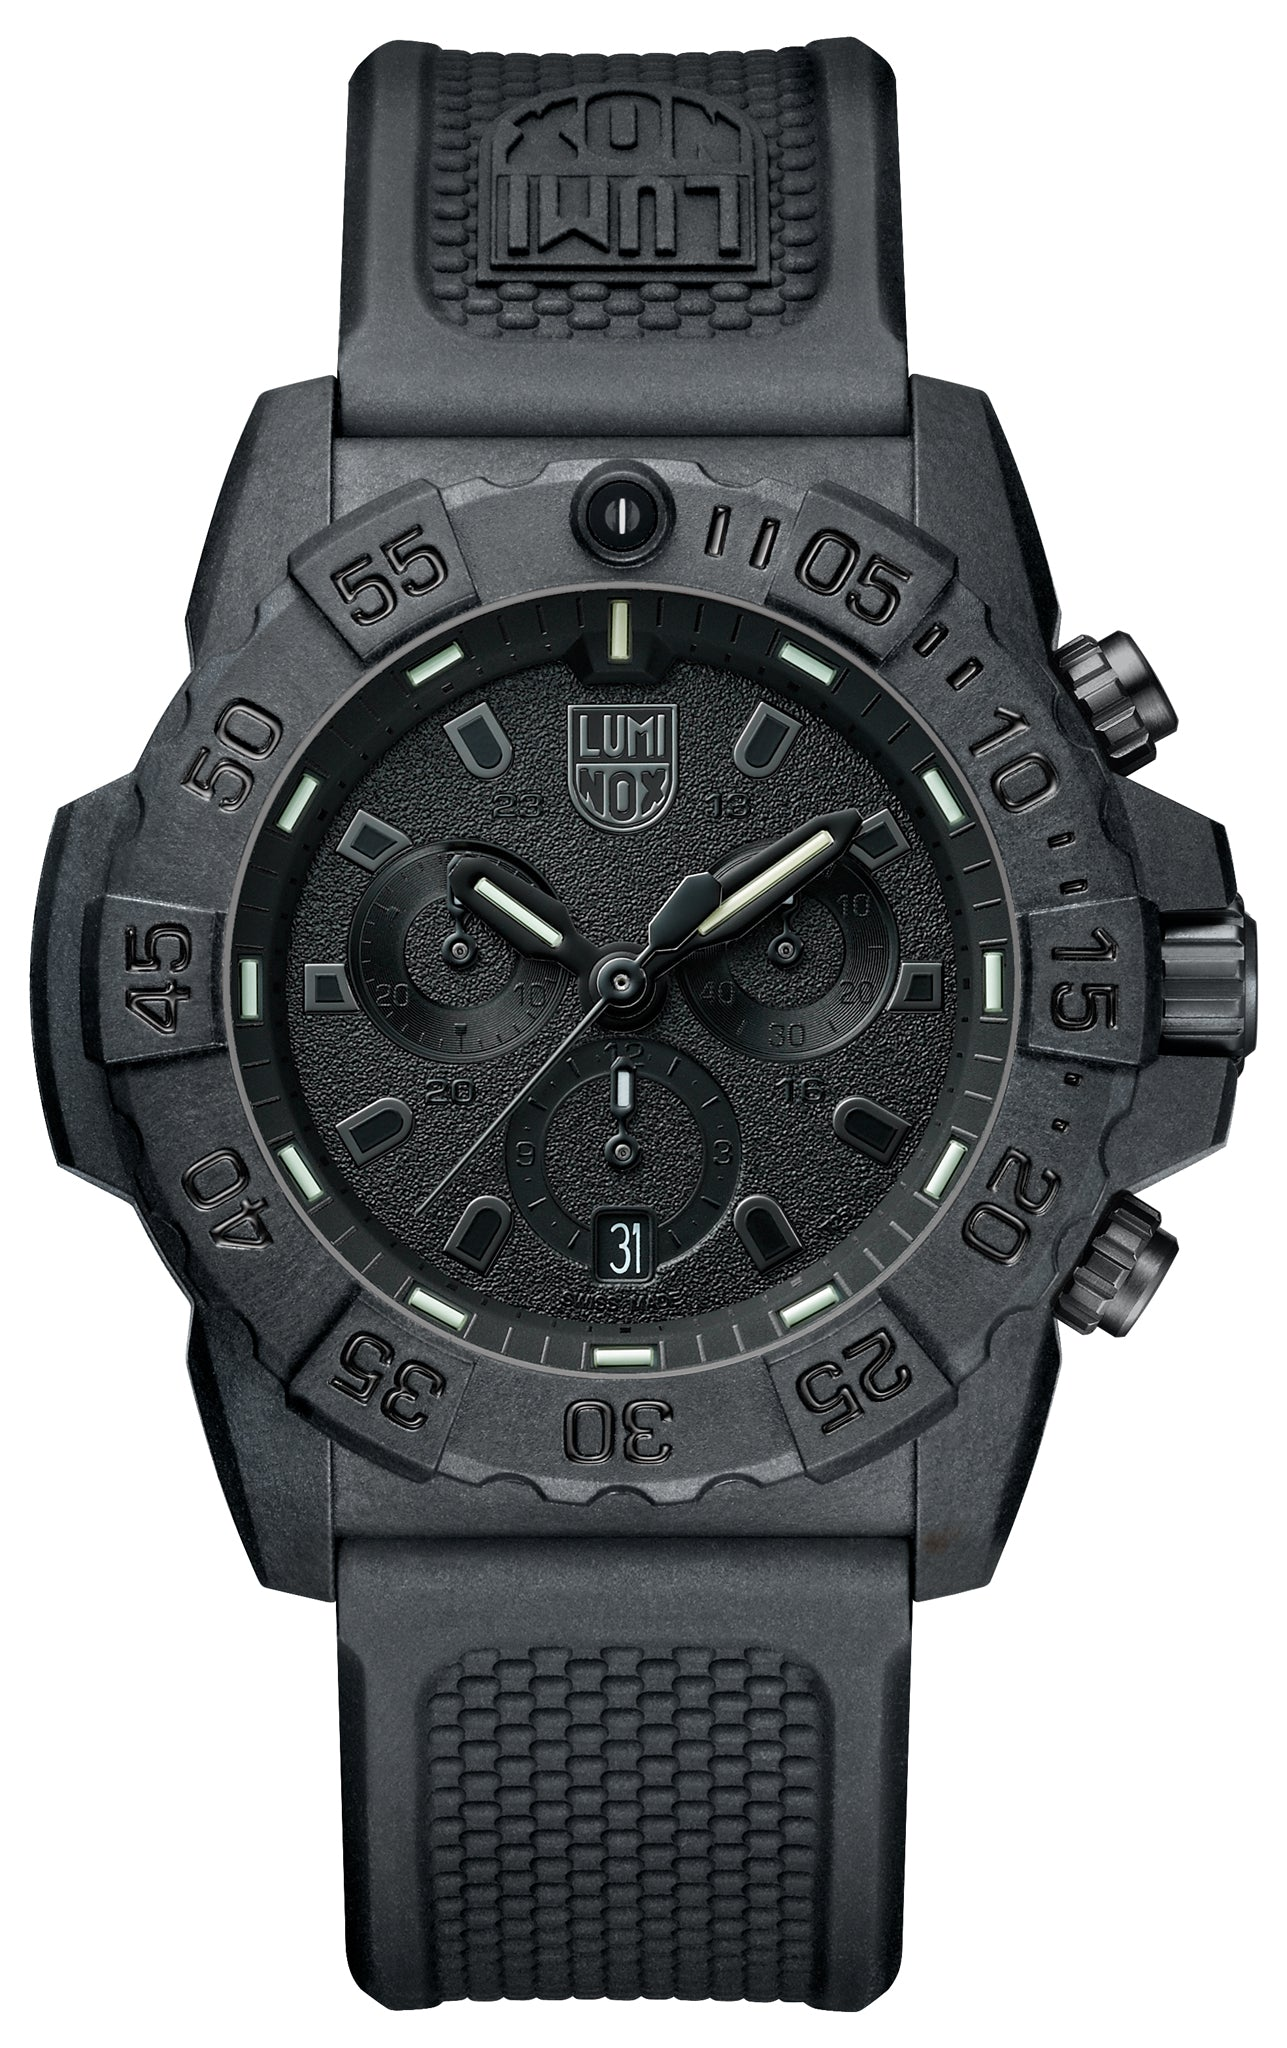 Navy SEAL Chronograph 3581.BO